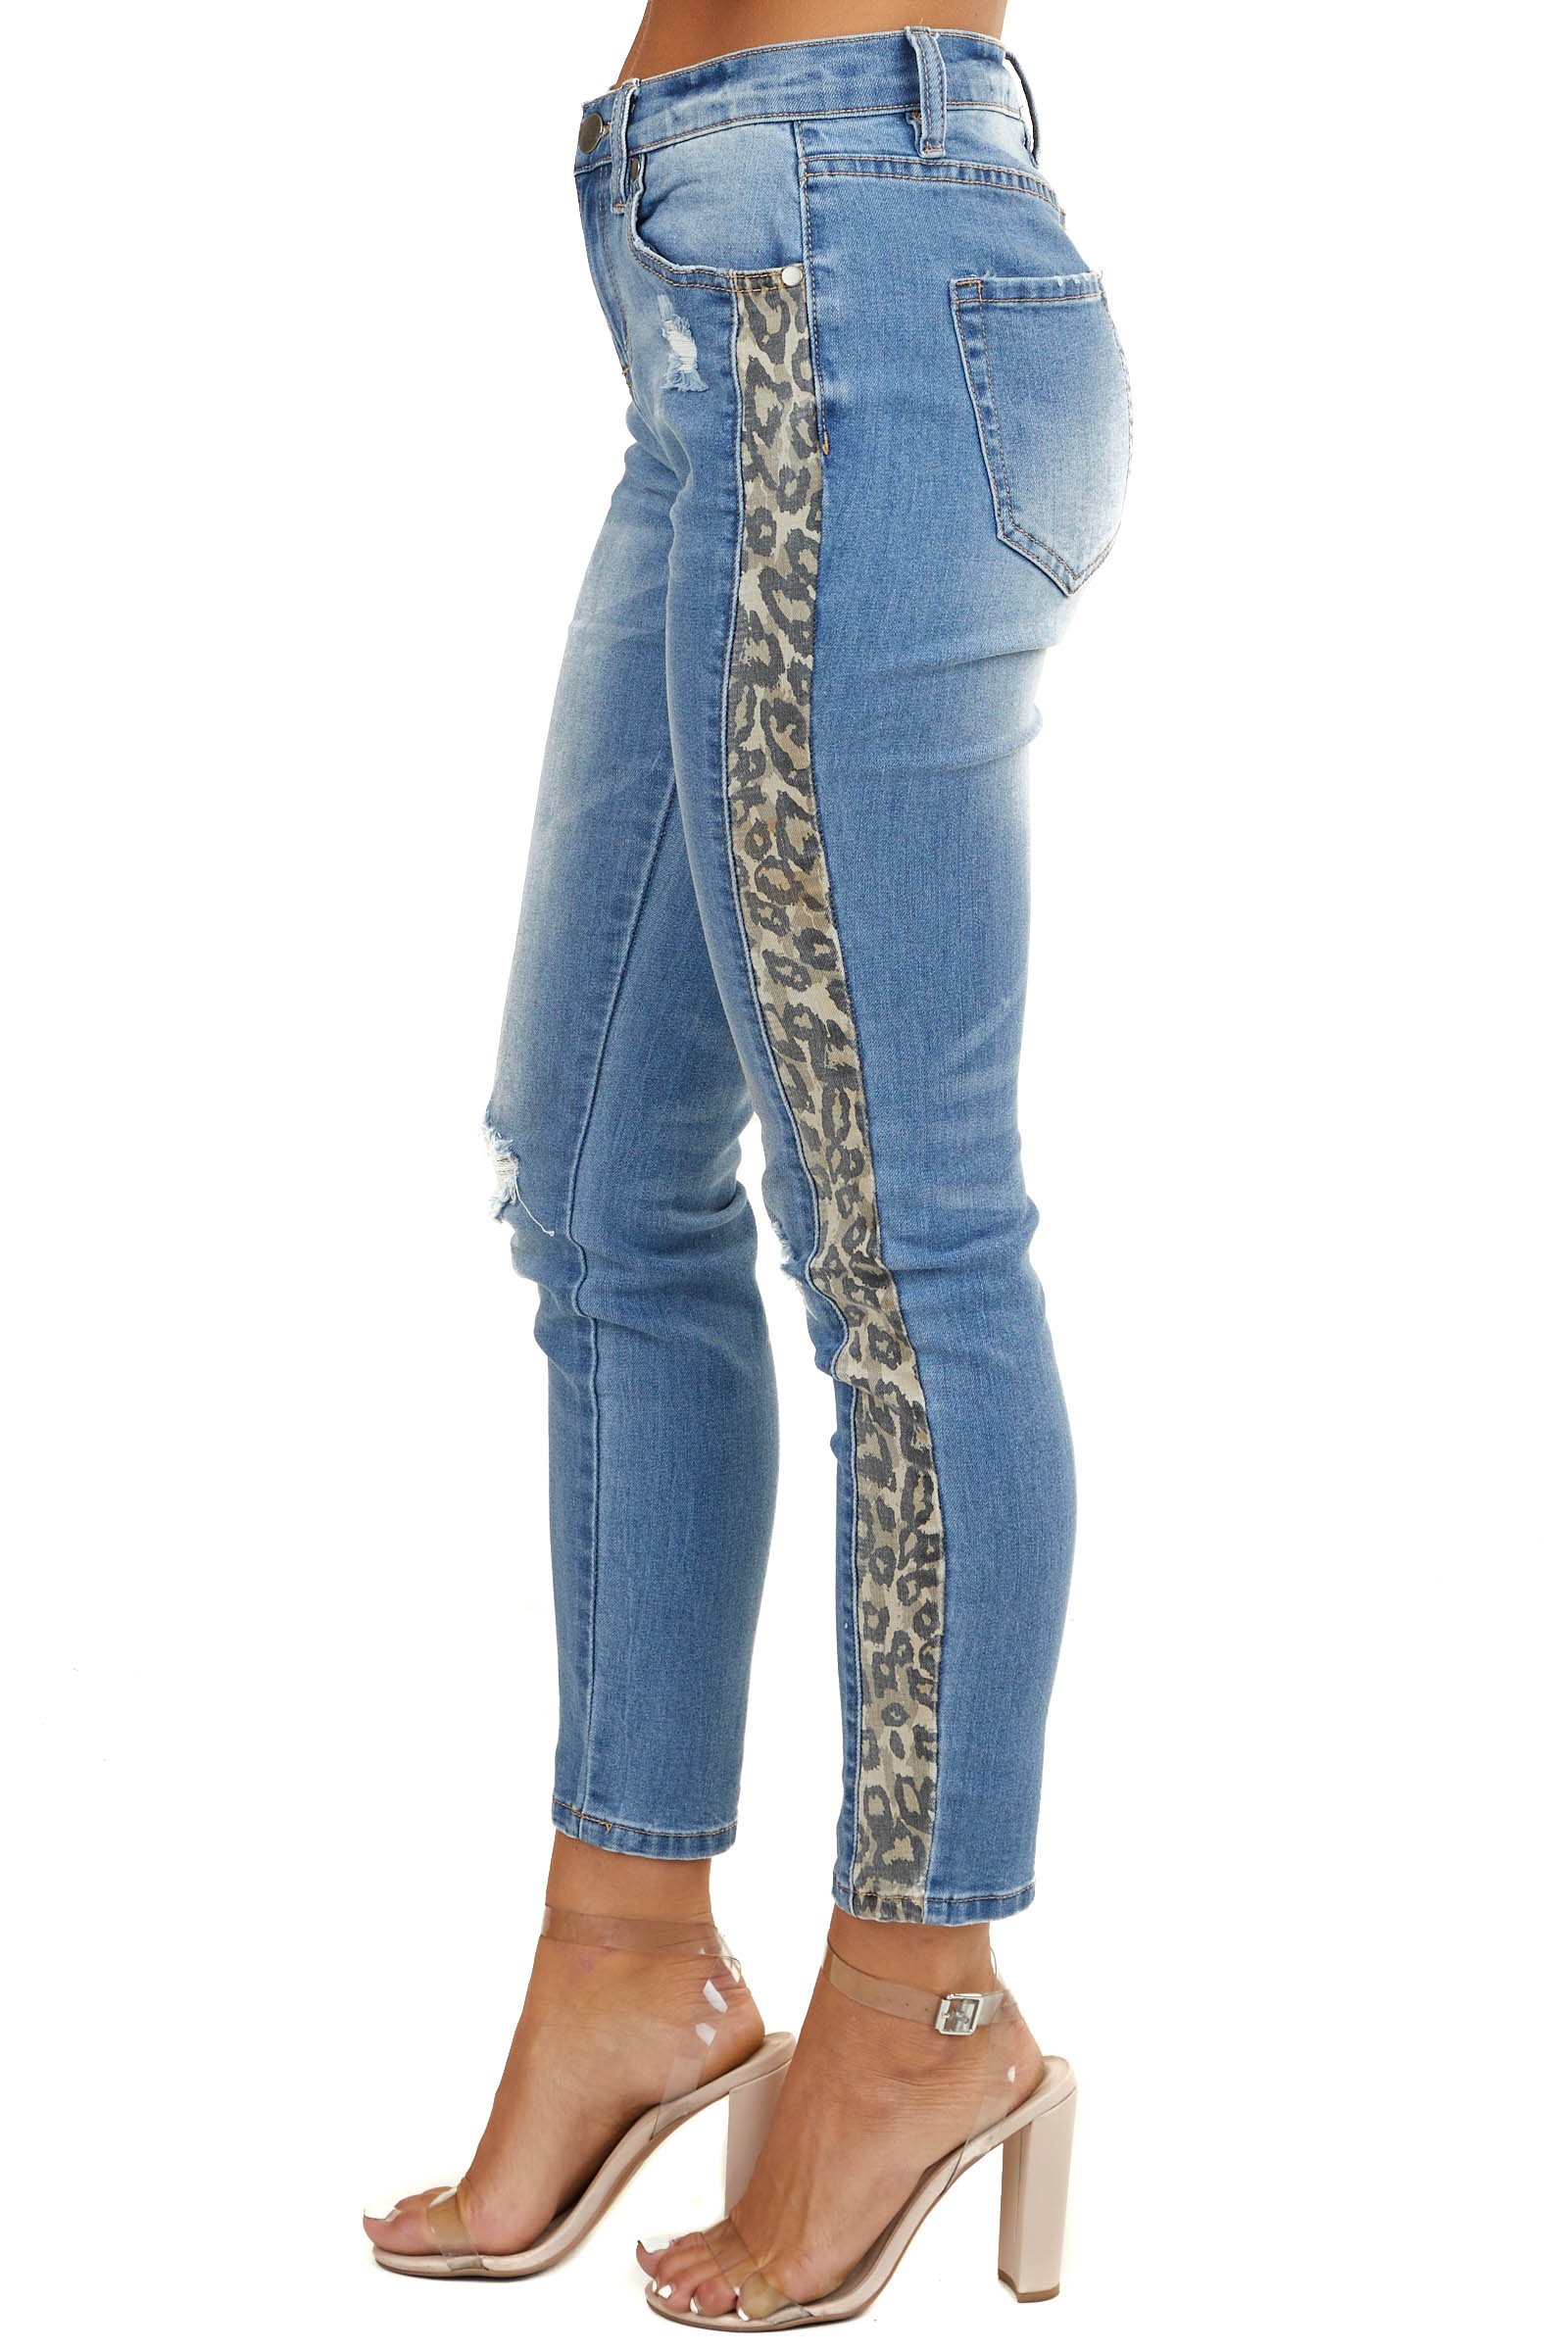 Medium Wash High Rise Denim Jeans with Leopard Print Stripes